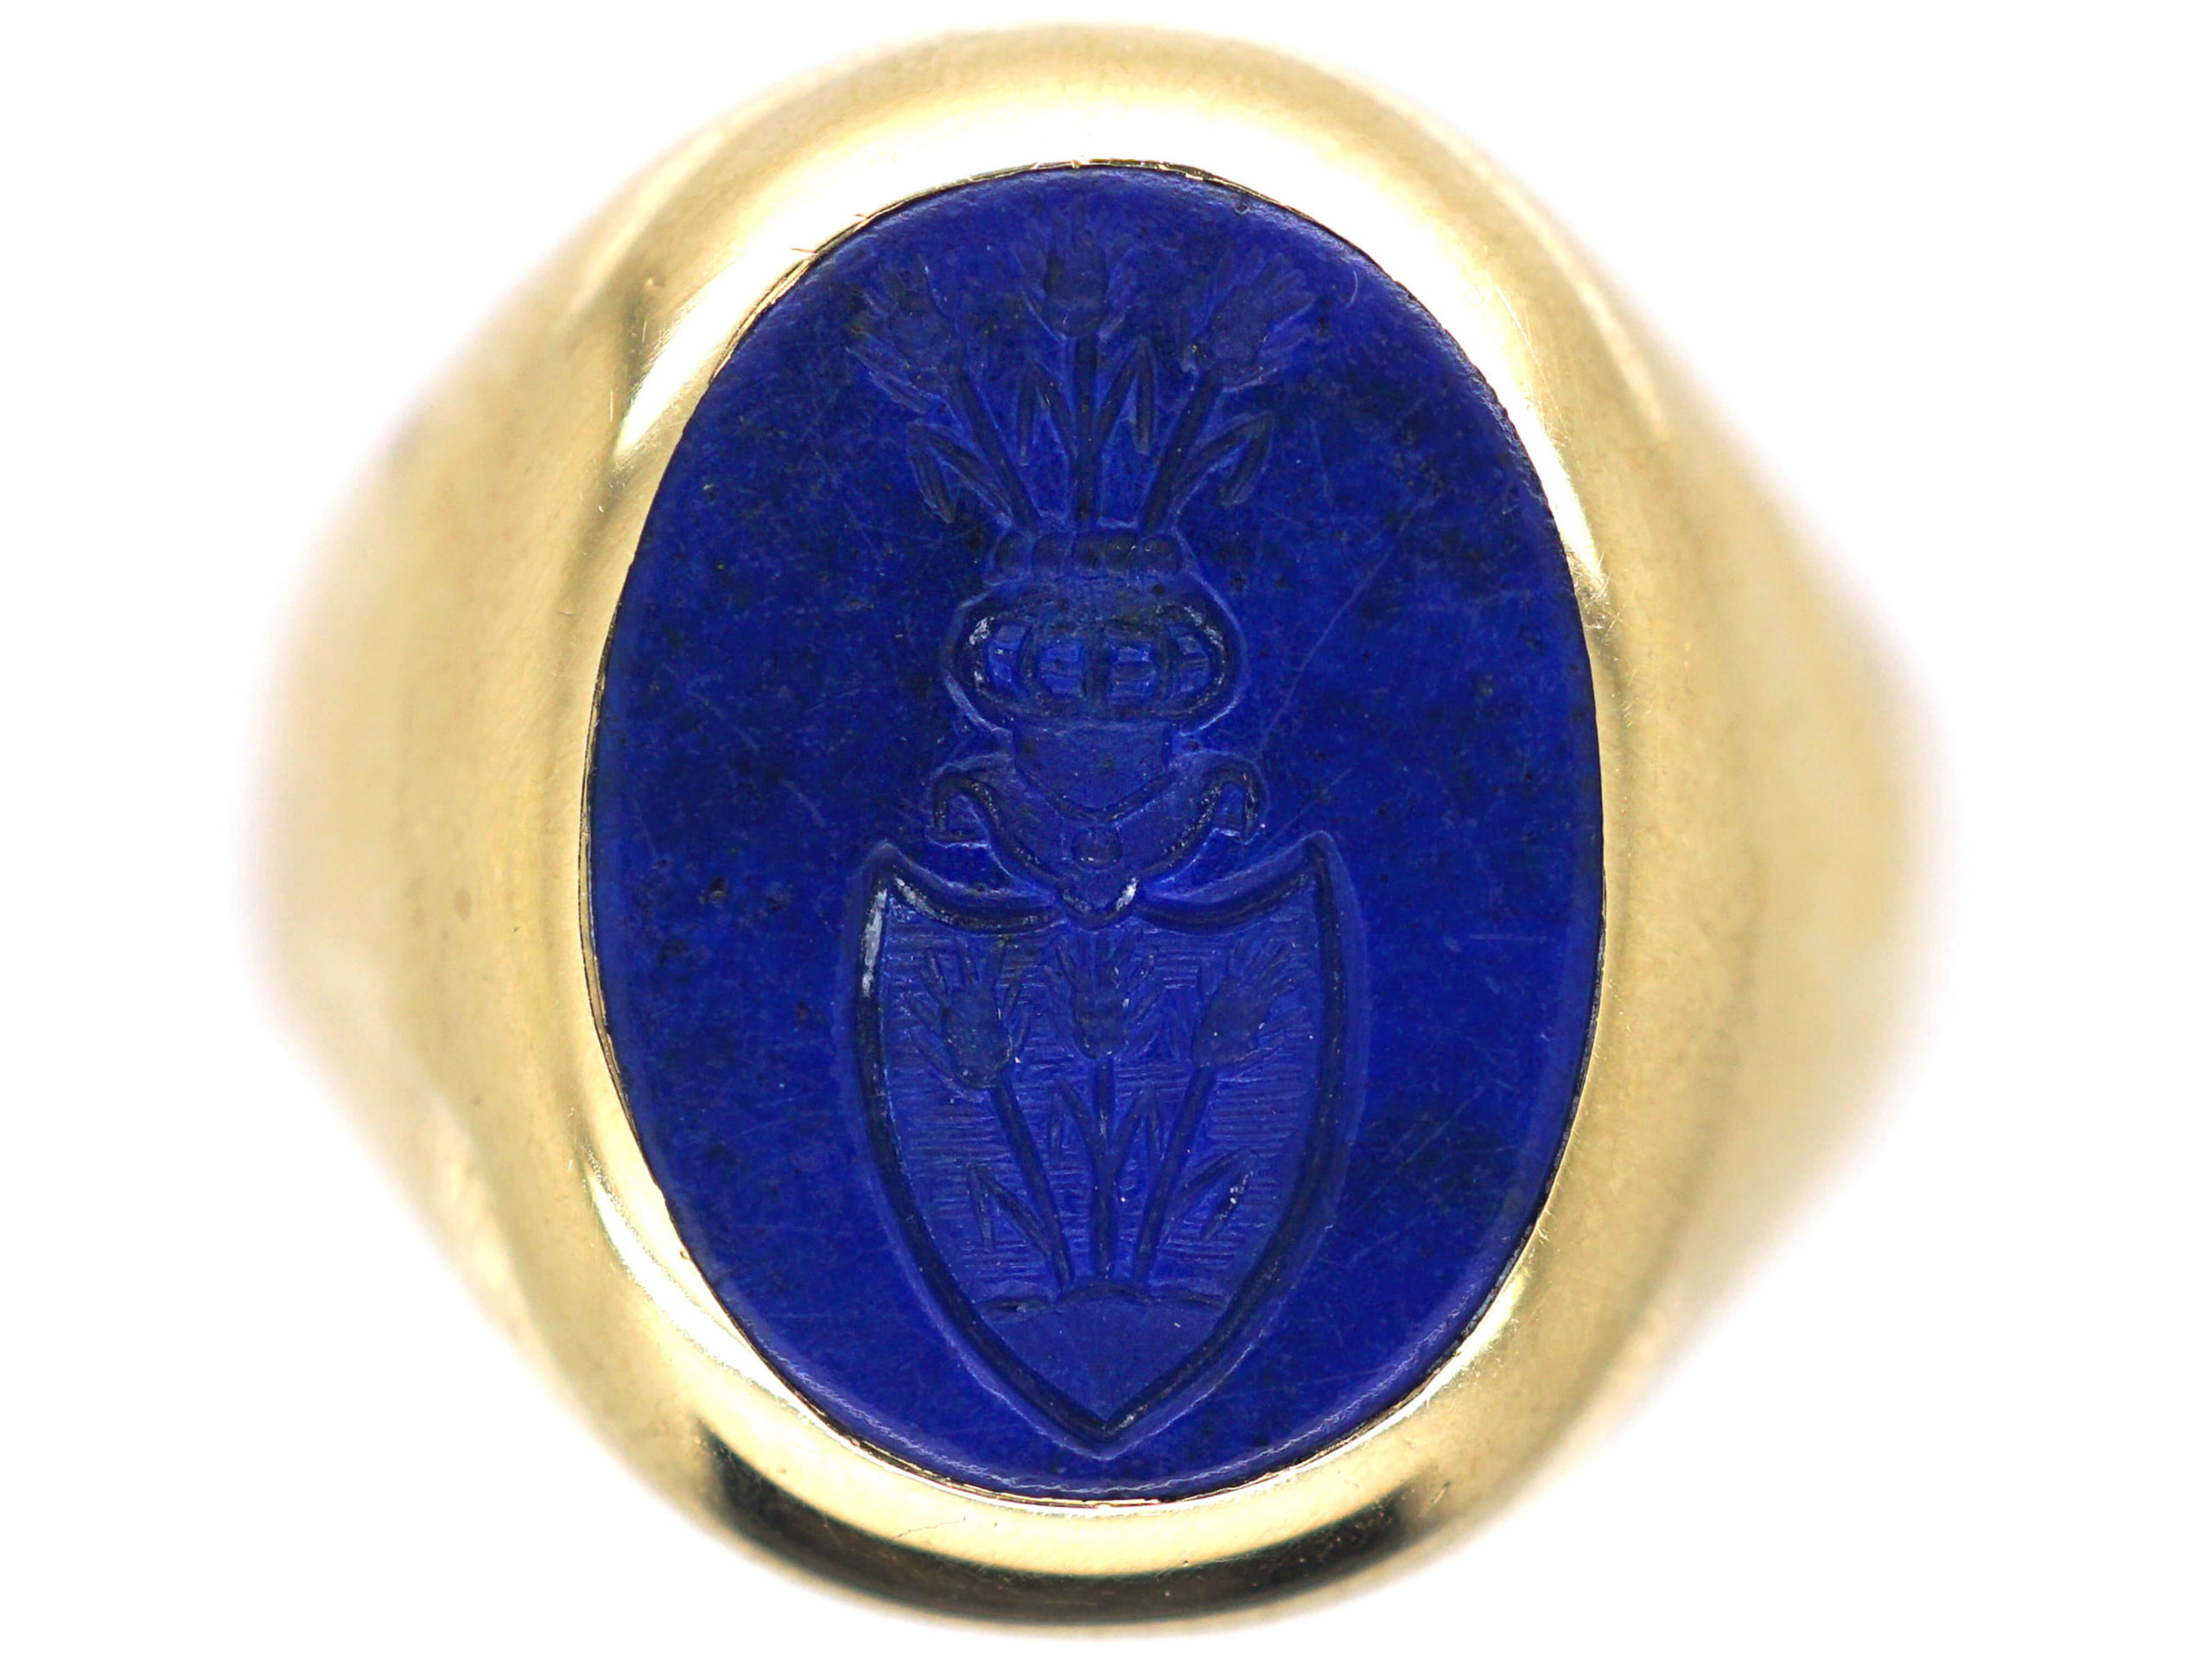 Gold Signet Ring with Lapis Lazuli Intaglio of a Crest